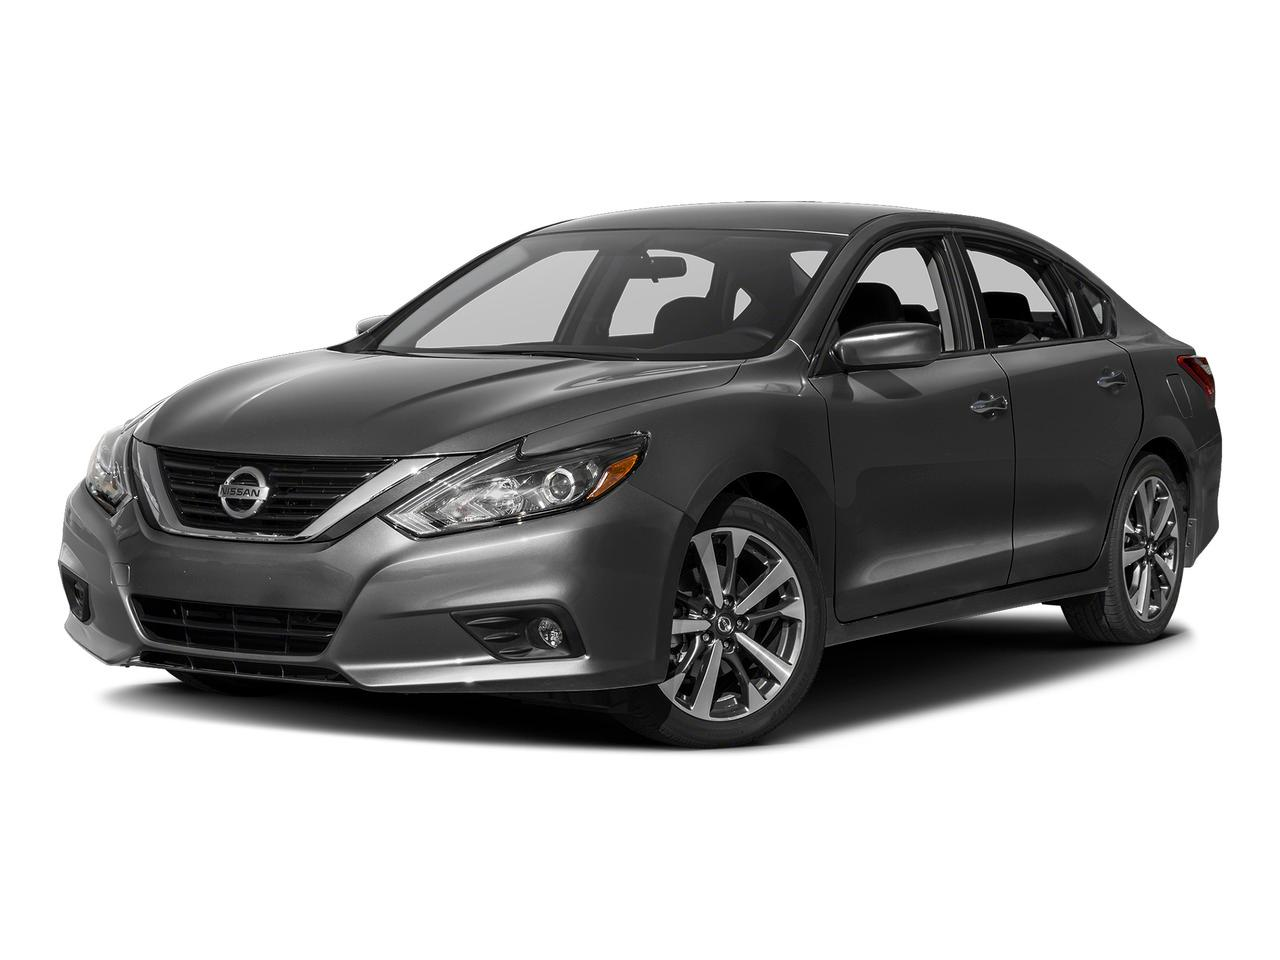 2017 Nissan Altima Vehicle Photo in Jenkintown, PA 19046